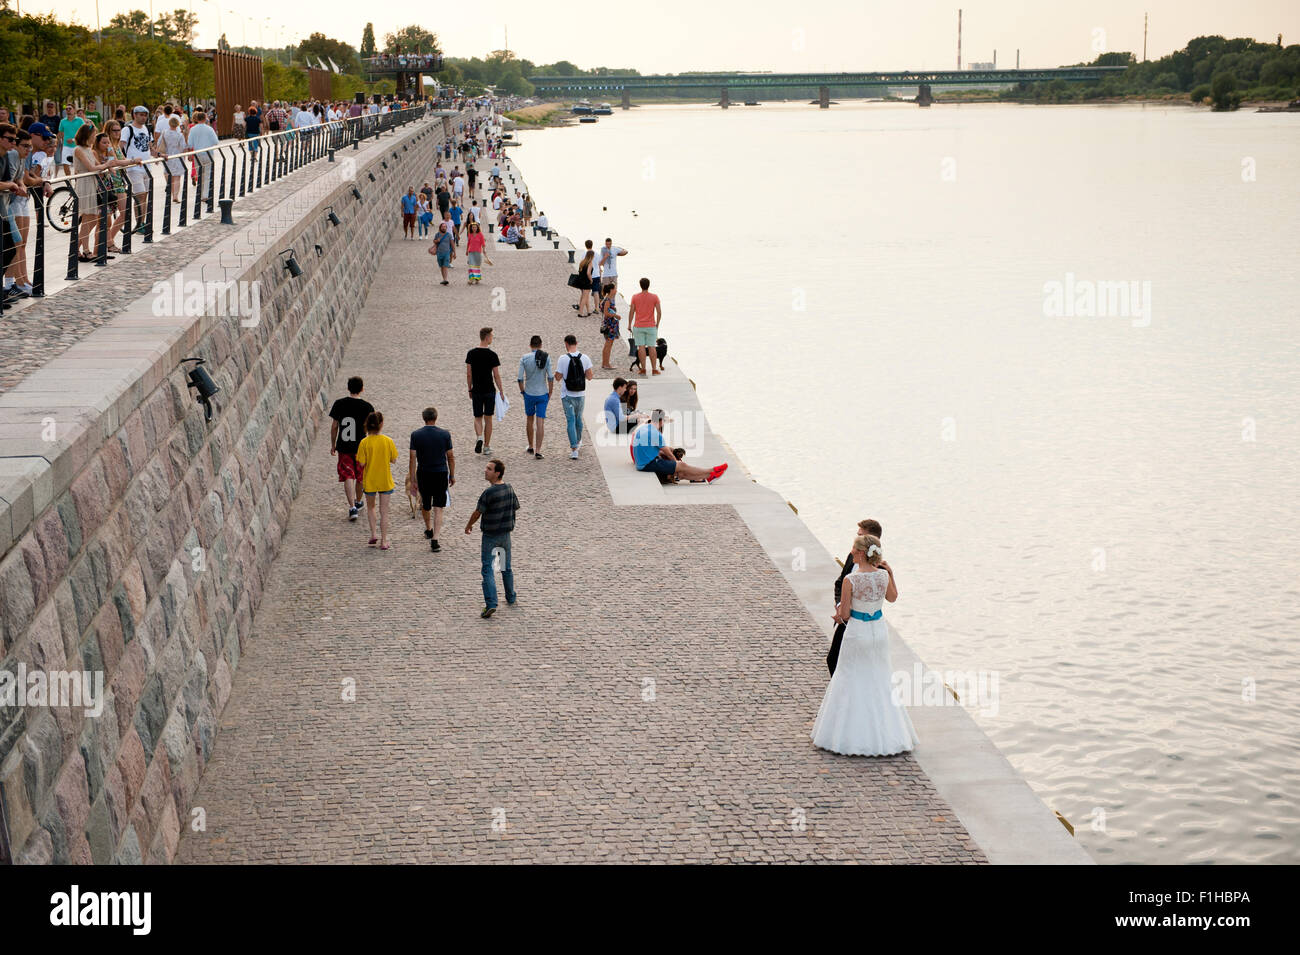 Newlyweds at the Boulevard of Vistula River - Stock Image